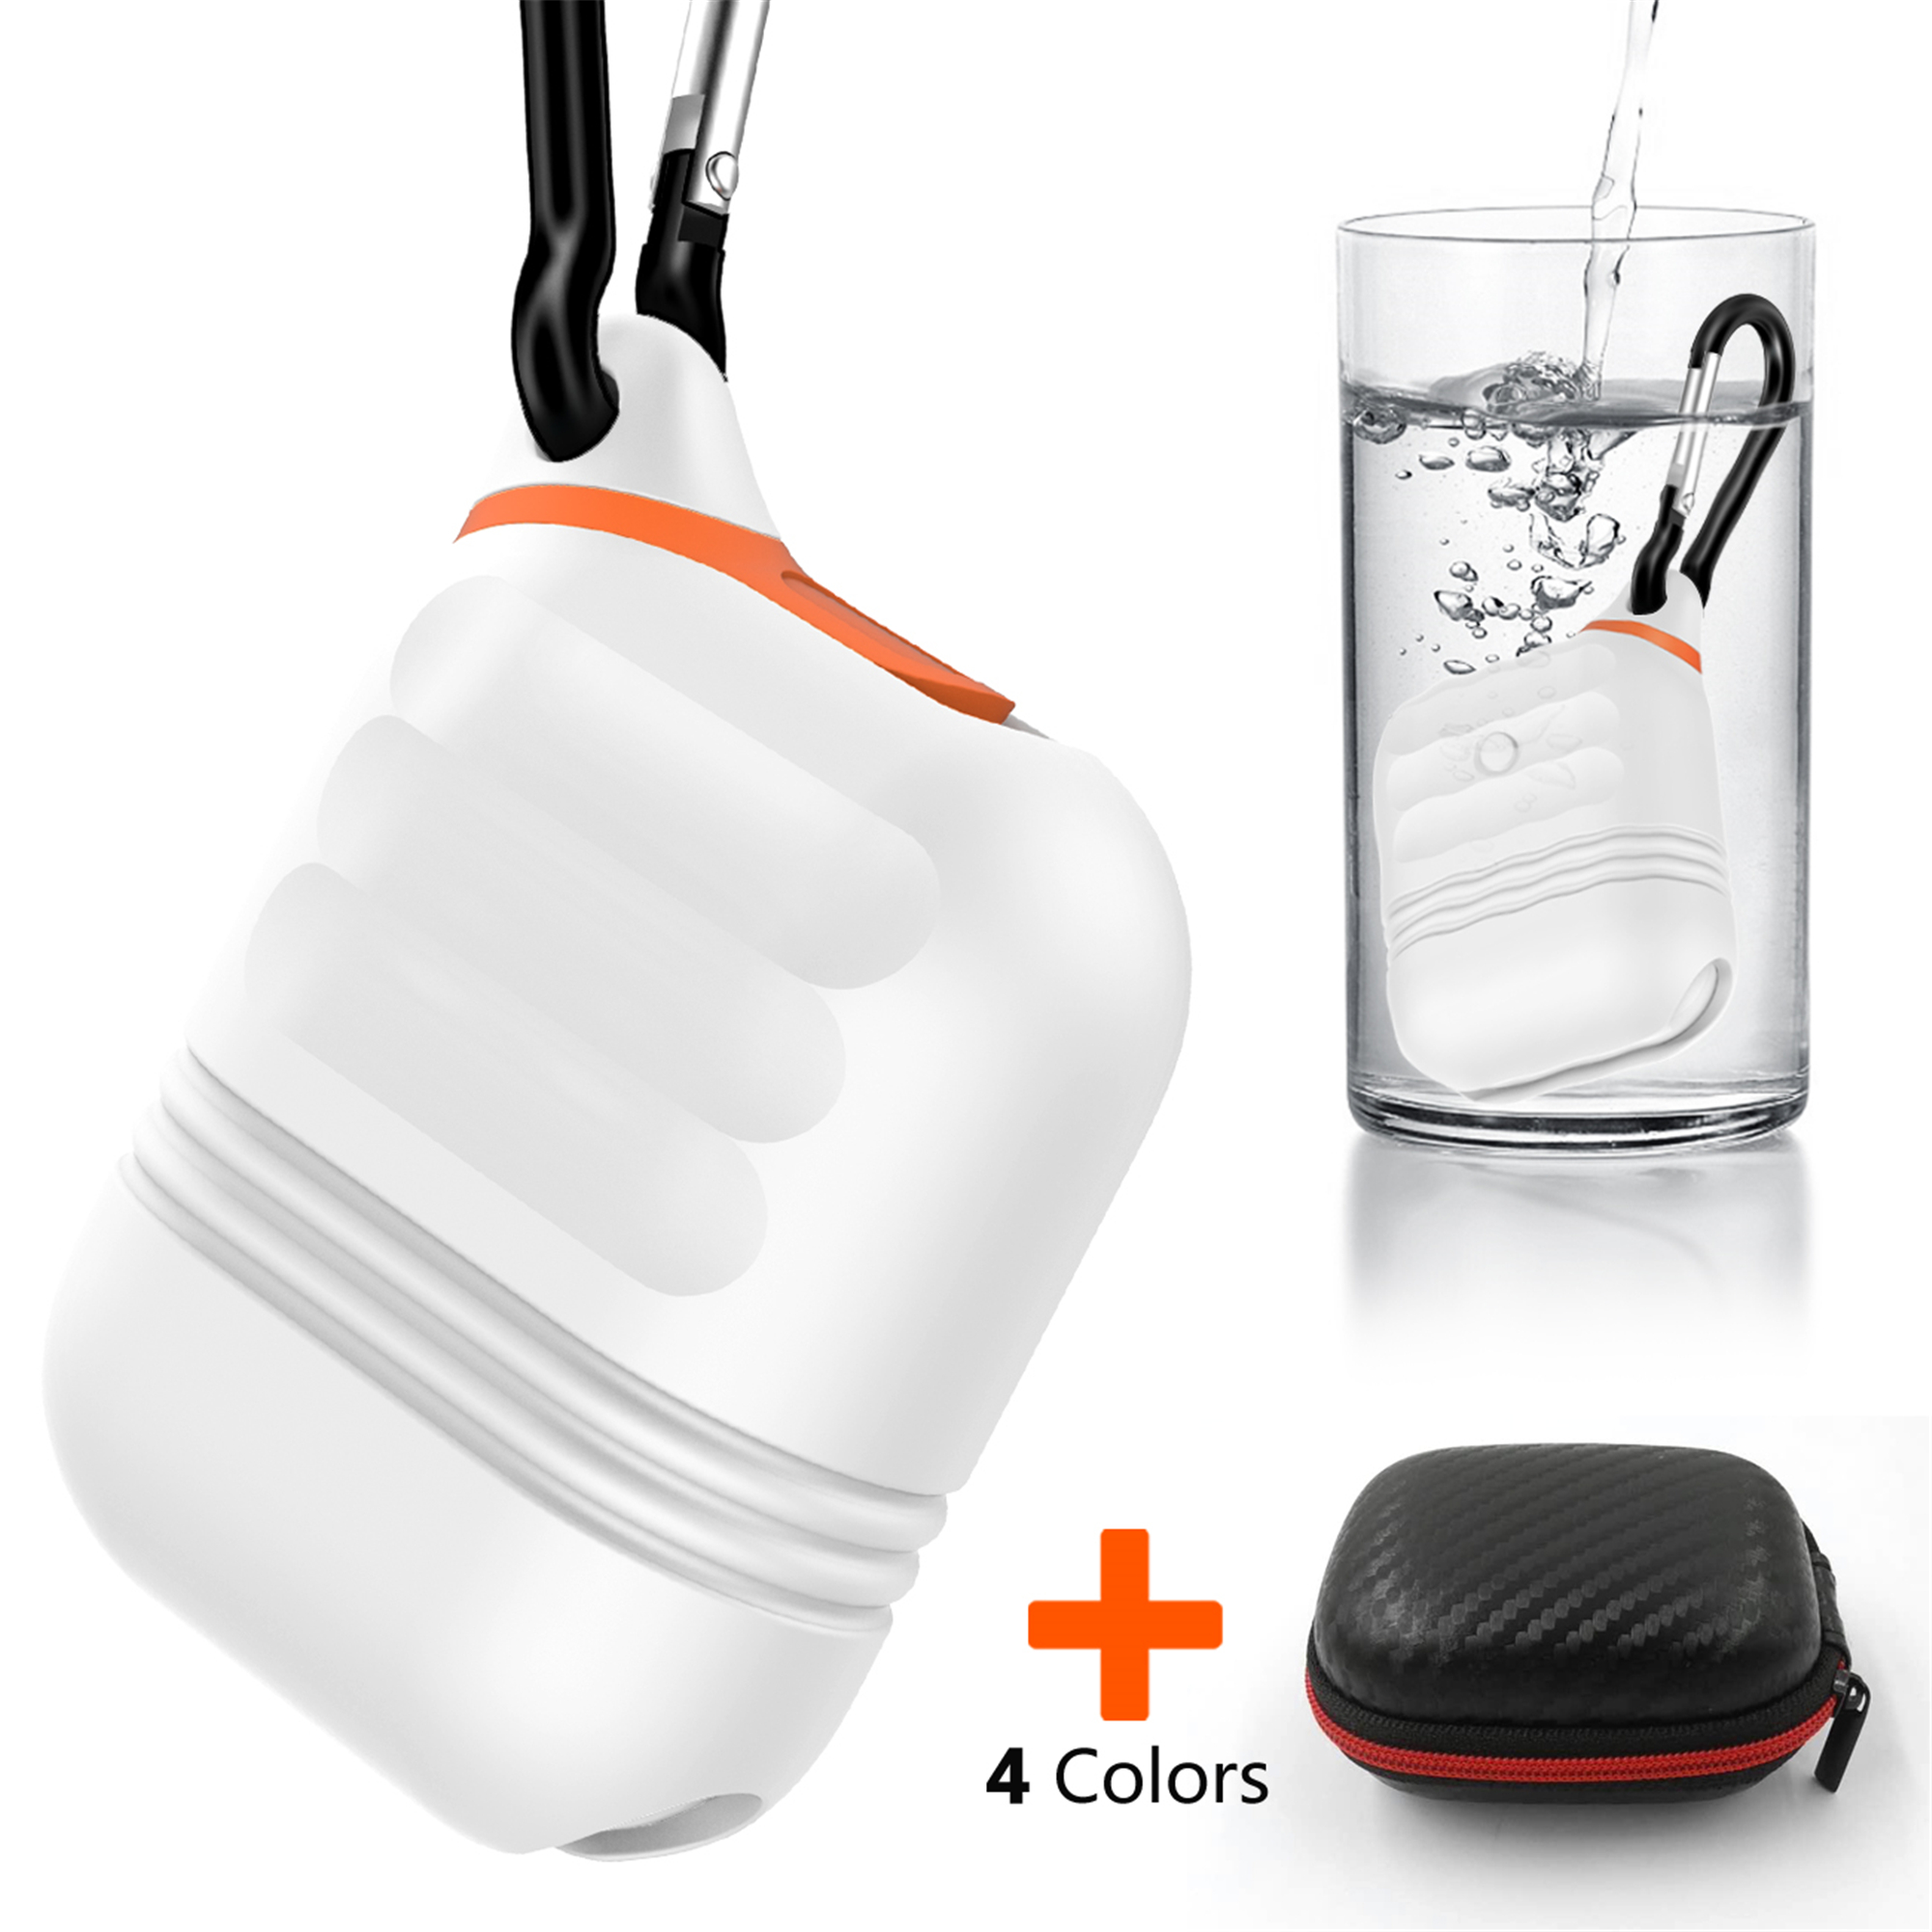 Moretek Airpods Cover Case, Waterproof Carrying Cases for Apply AirPods Gift for Thanksgiving/Christmas/New Year/Birthday (Black)